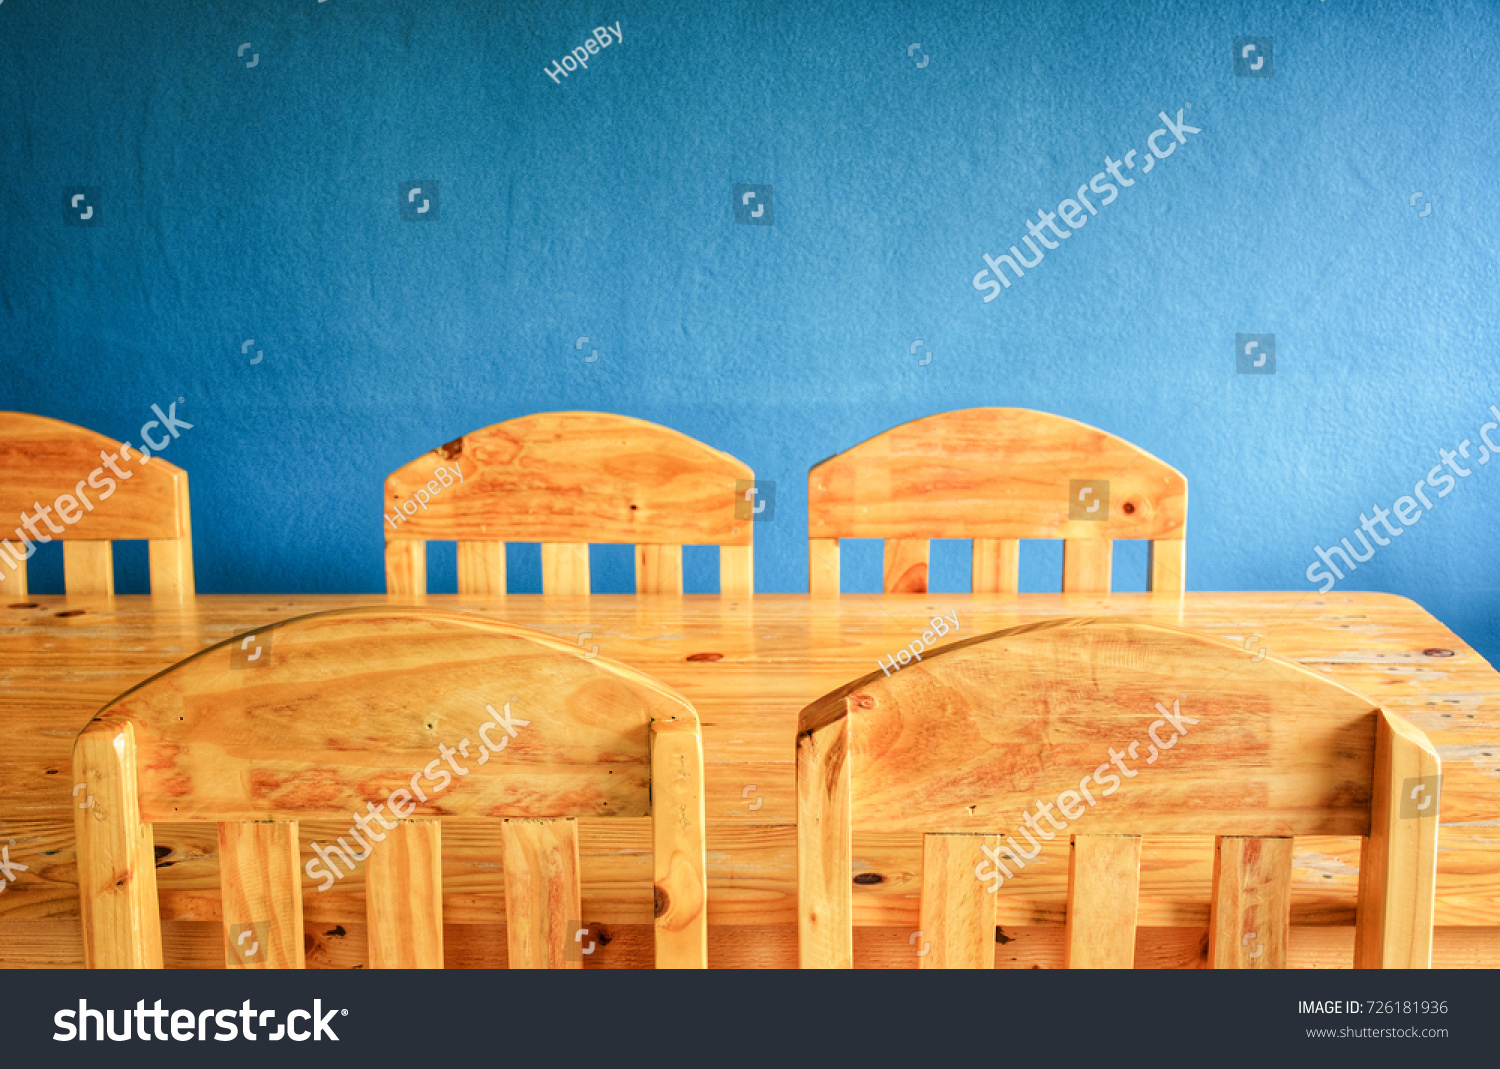 ดาวน์โหลดรูป Wooden dinning table set over blue wall. Vintage style.